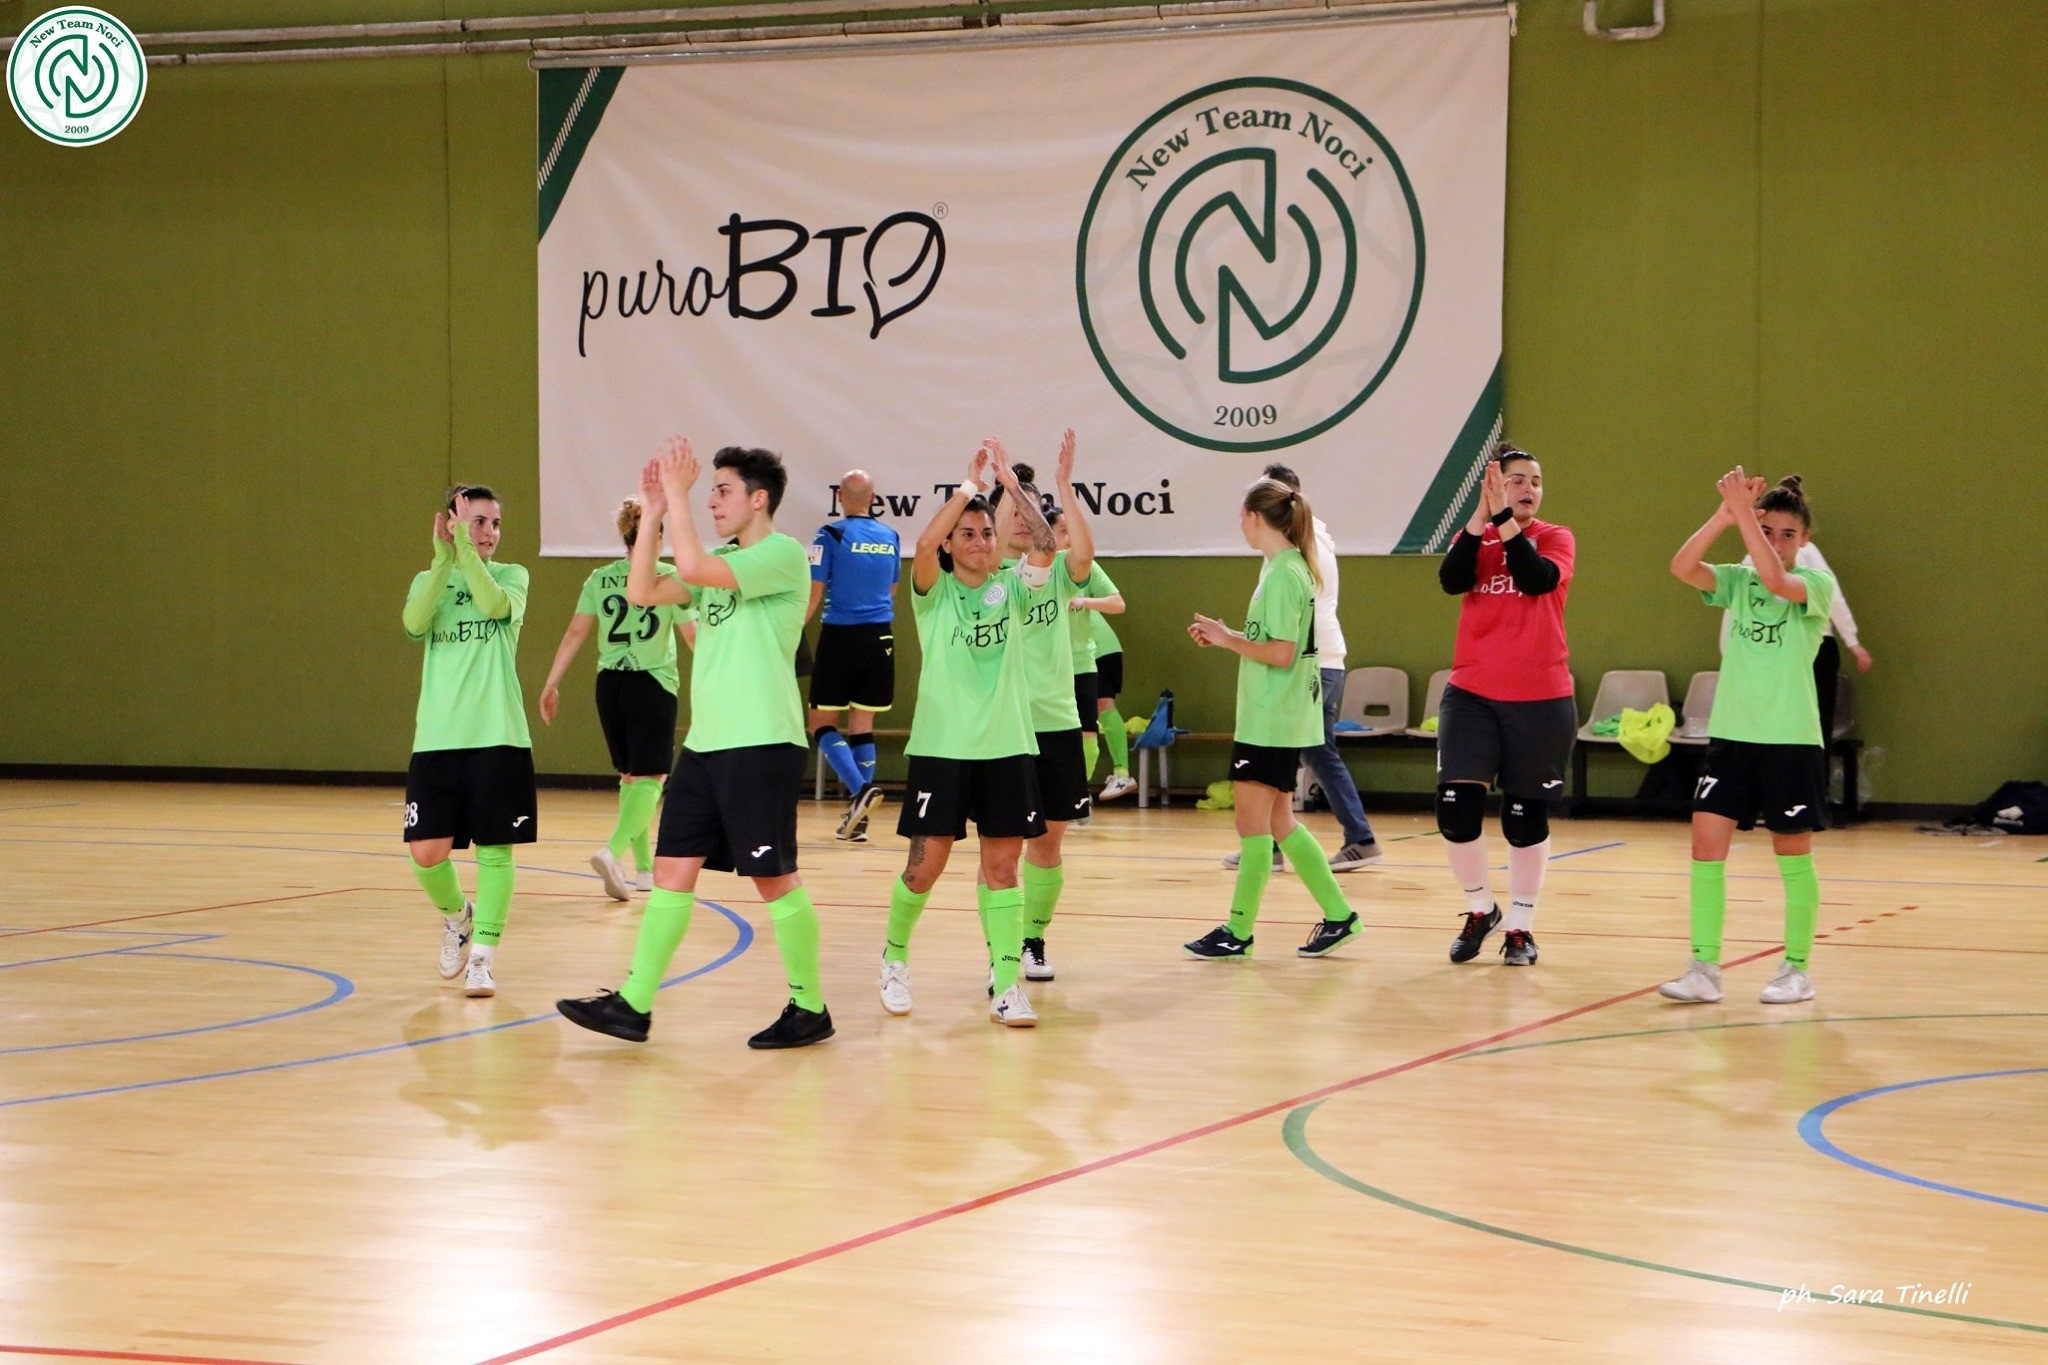 01 26 purobio cosmetics noci vs kick off milano